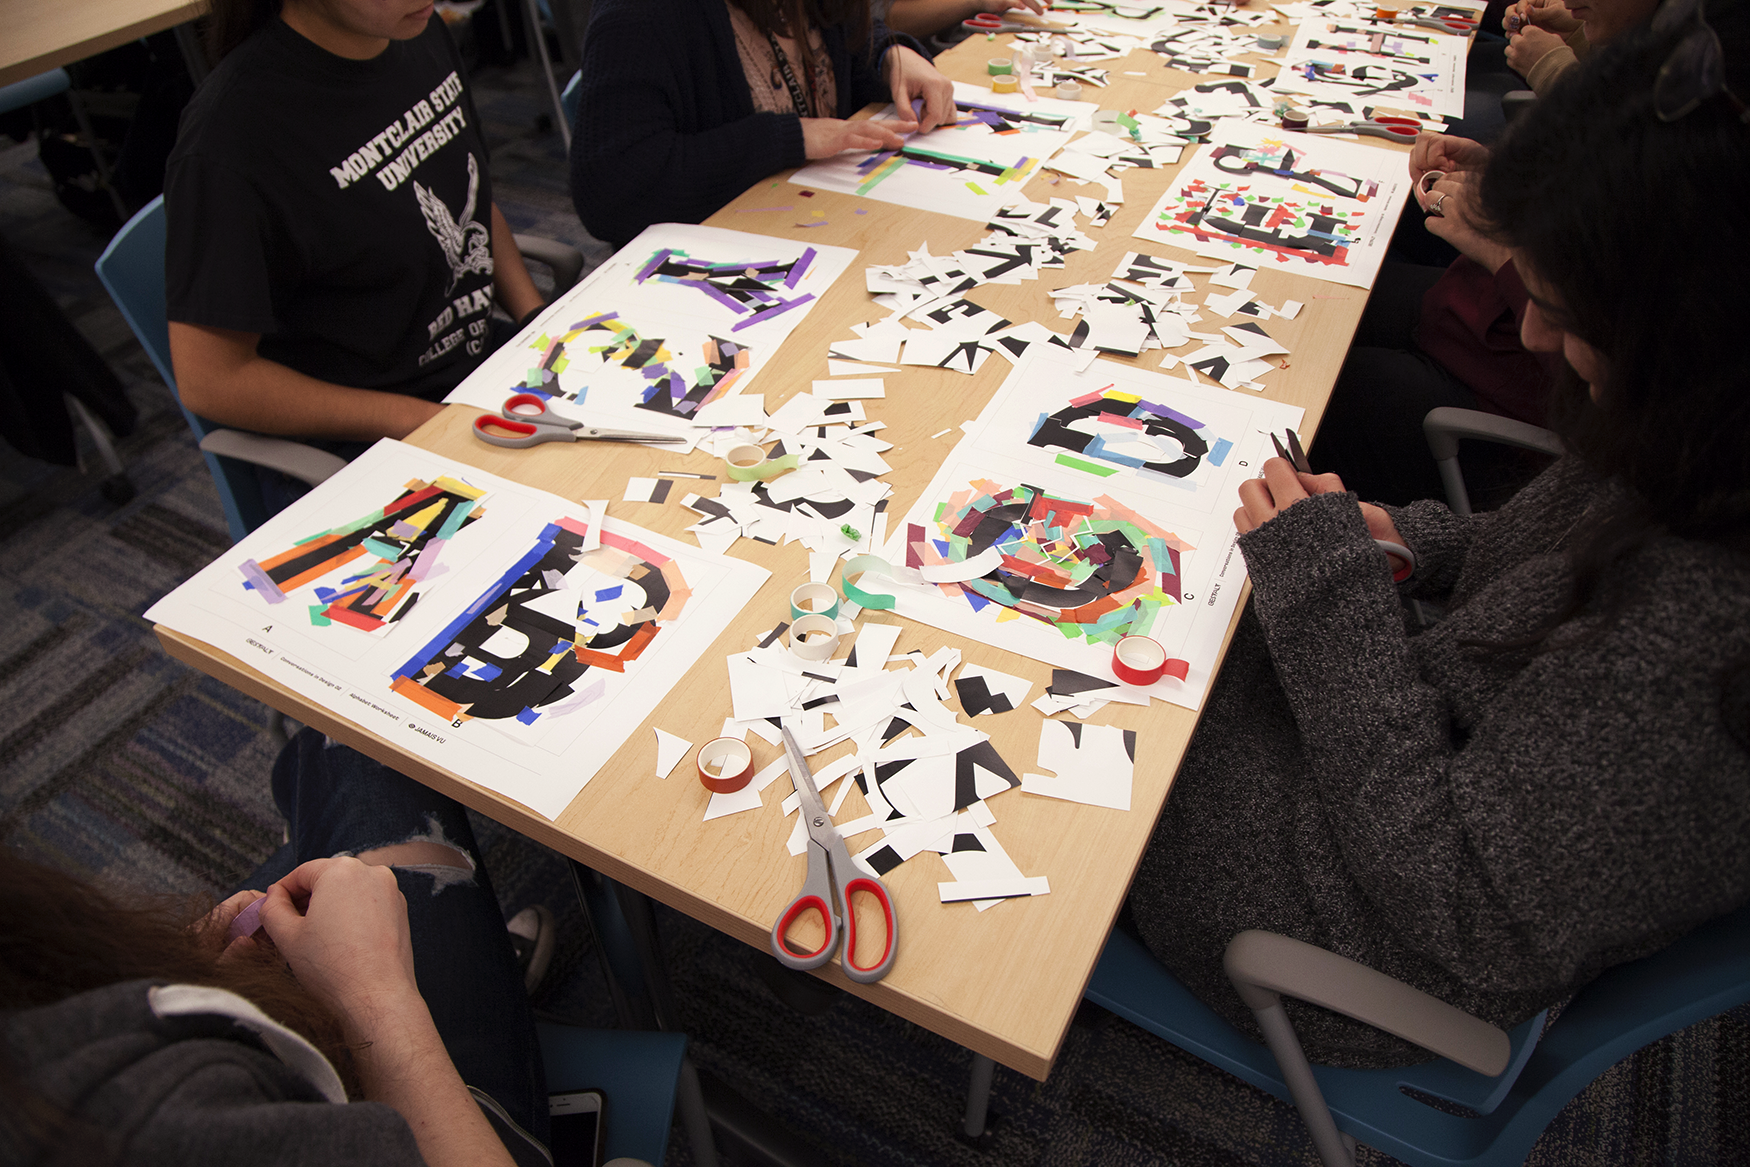 Some letters took form fairly quickly, while others were reworked and layered as the session moved along.